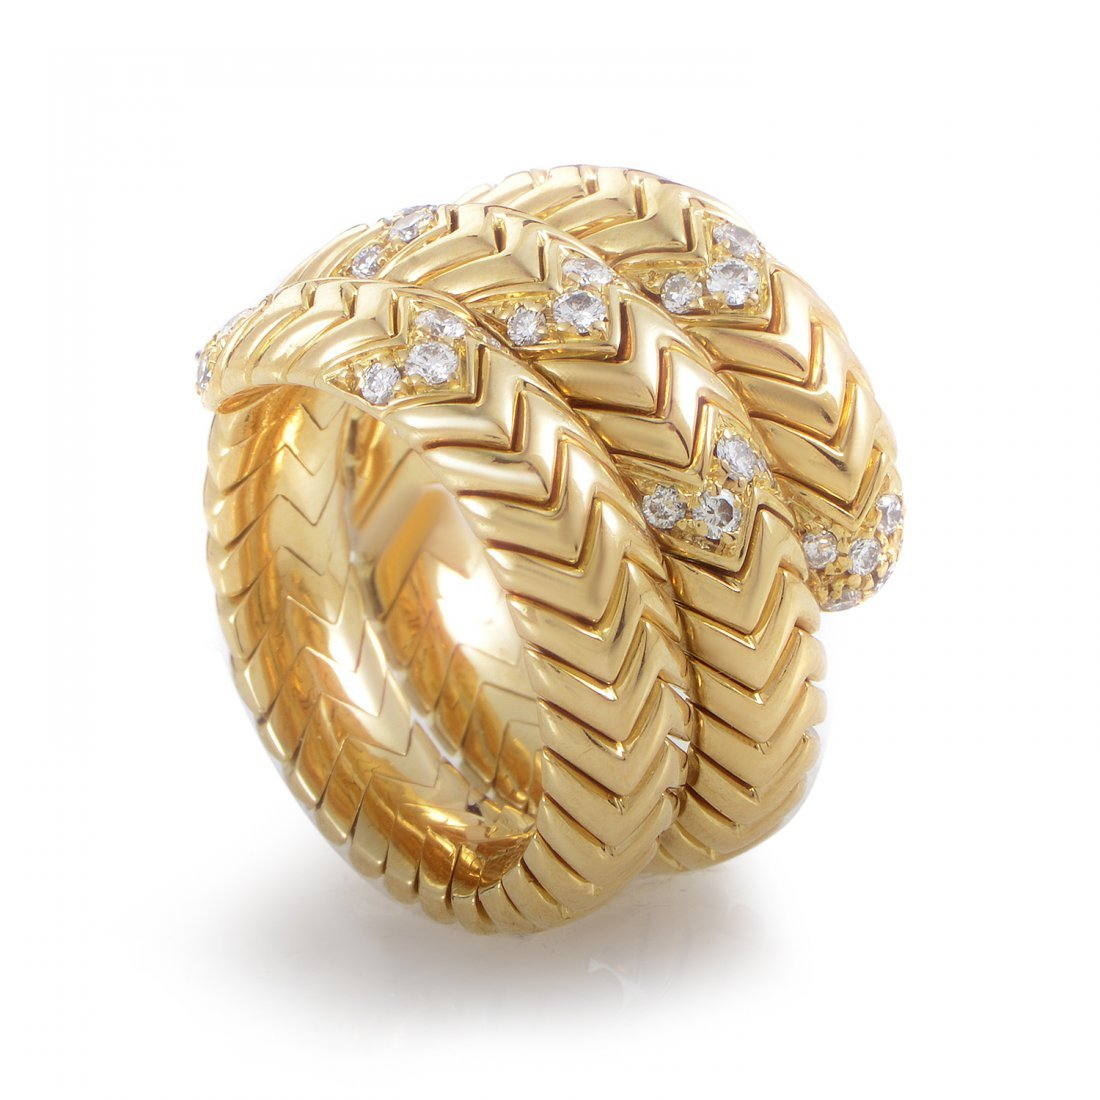 Bvlgari Spiga 18K Yellow Gold Diamond Band Ring